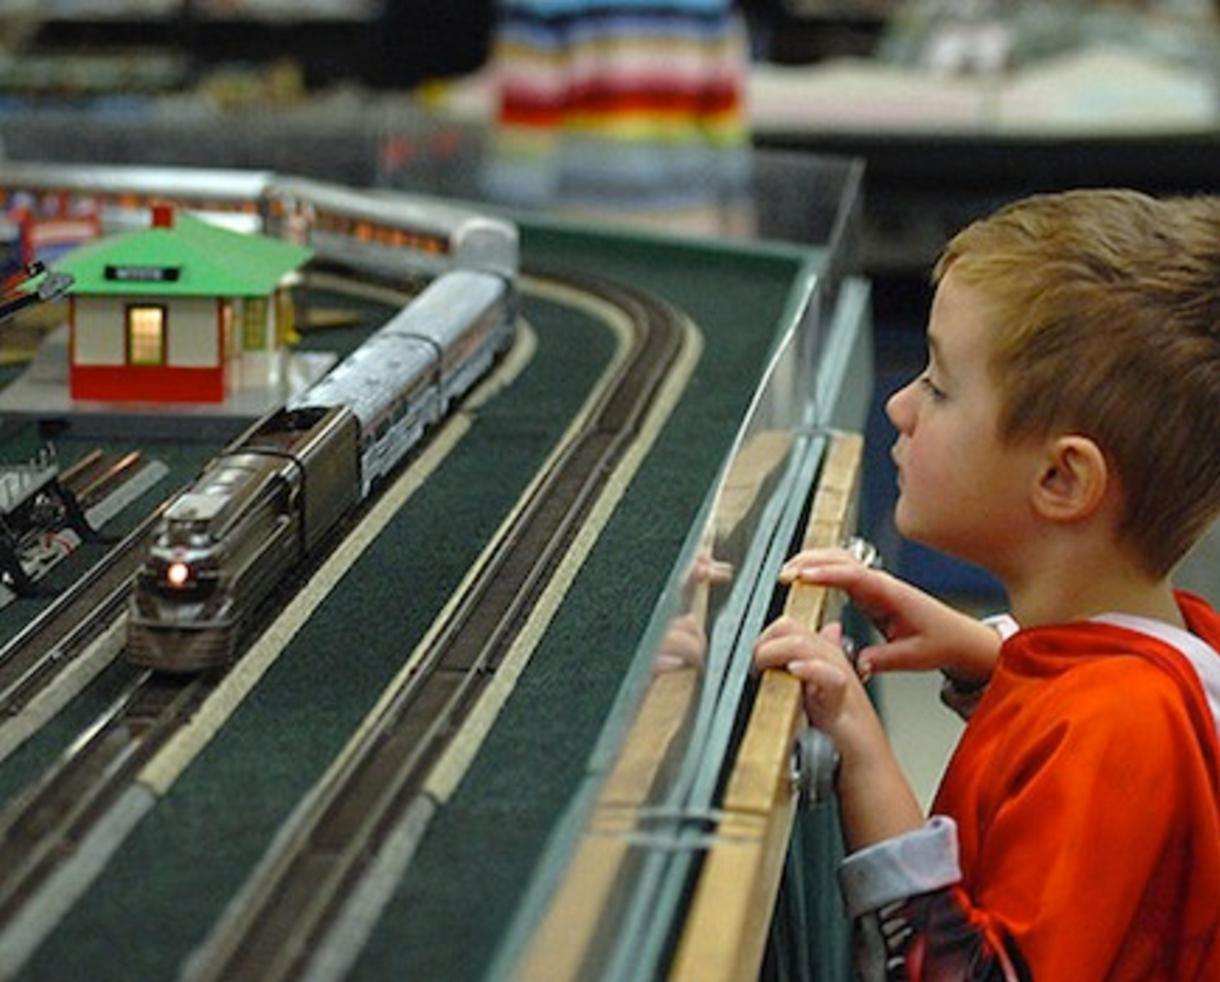 $7 for Two Adult Tickets to The Gaithersburg Model Train Show and The Gaithersburg Railroad, Steamship, and Transportation Show on November 4 (50% Off) KIDS FREE!